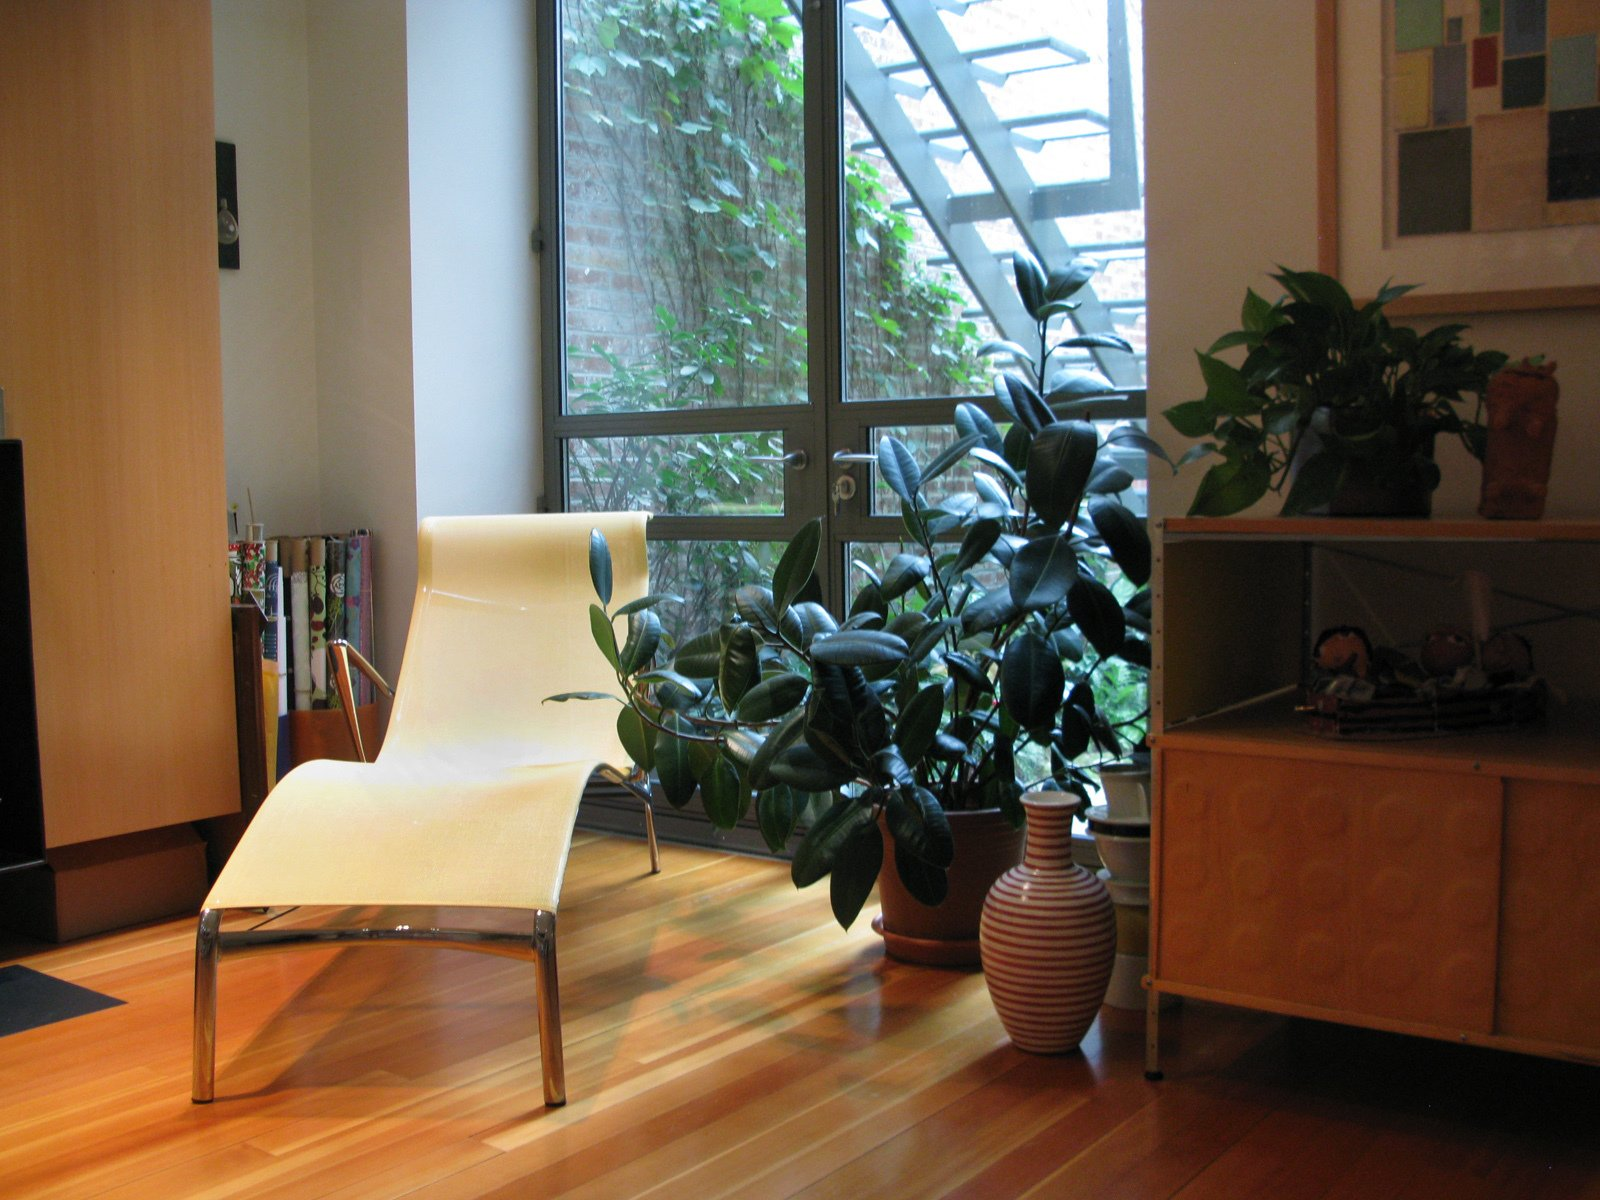 """Aside from the cohesion of past detailing and present decoration, the townhouse also blends inside and outside elements. Windows show glimpses of the garden outside, and potted plants are as well-placed at the artworks.  """"Plants make it feel more human and alive,"""" the owner says.  Photo 15 of 51 in City Modern Home Tours: Brooklyn"""